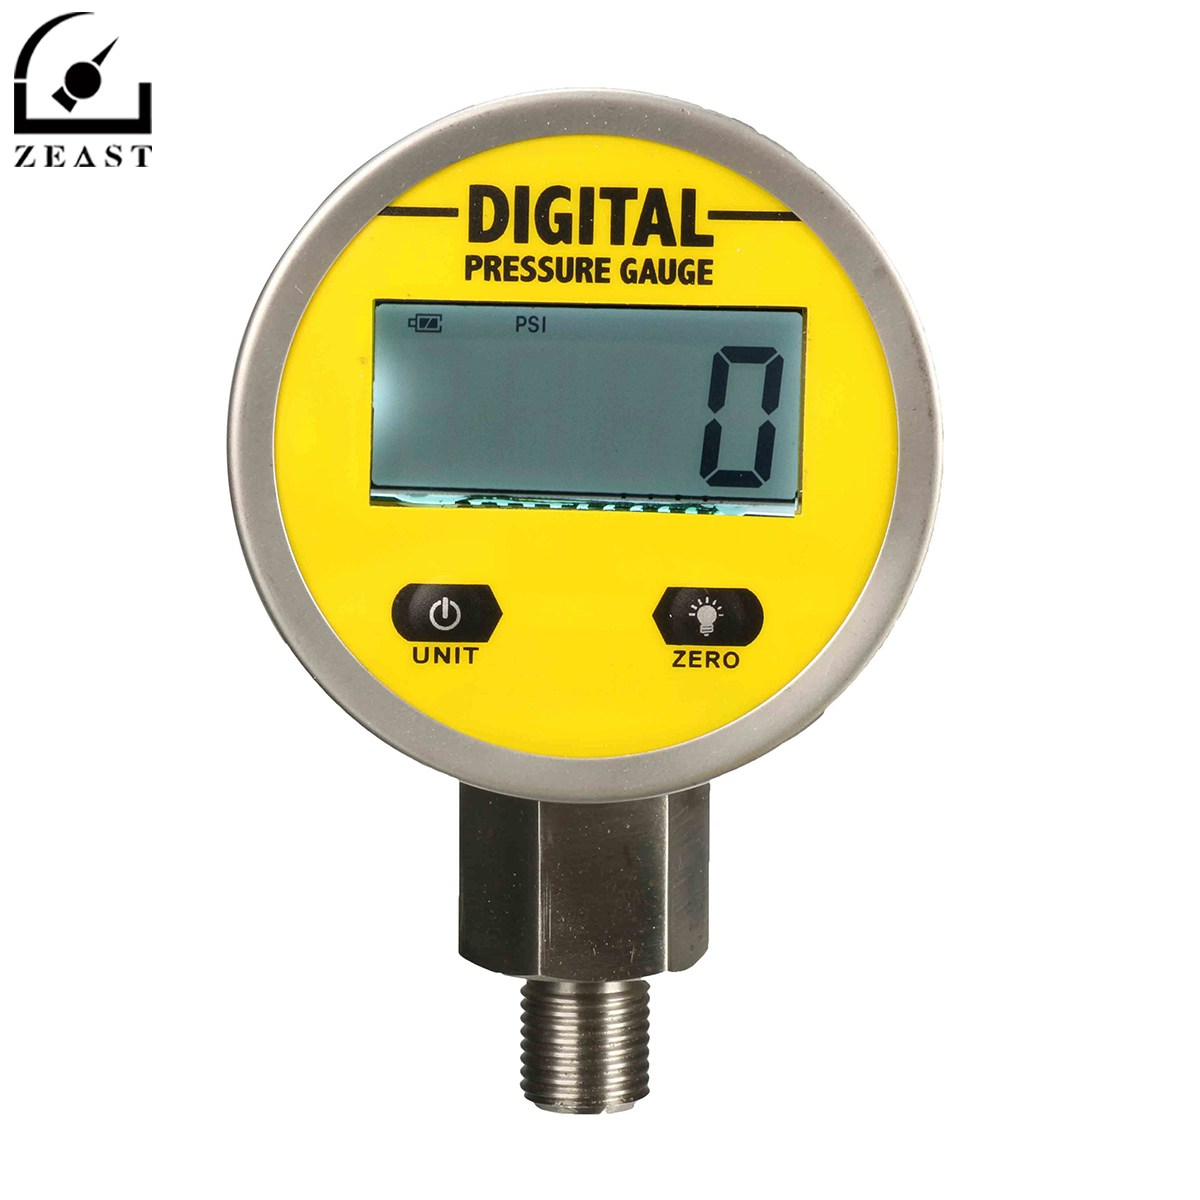 цена на Digital Hydraulic Pressure Gauge 0-250BAR/25Mpa/3600PSI (G/NPT1/4) -Base Entry Gas/Water/Oil Measurement Backlight Tester Meter